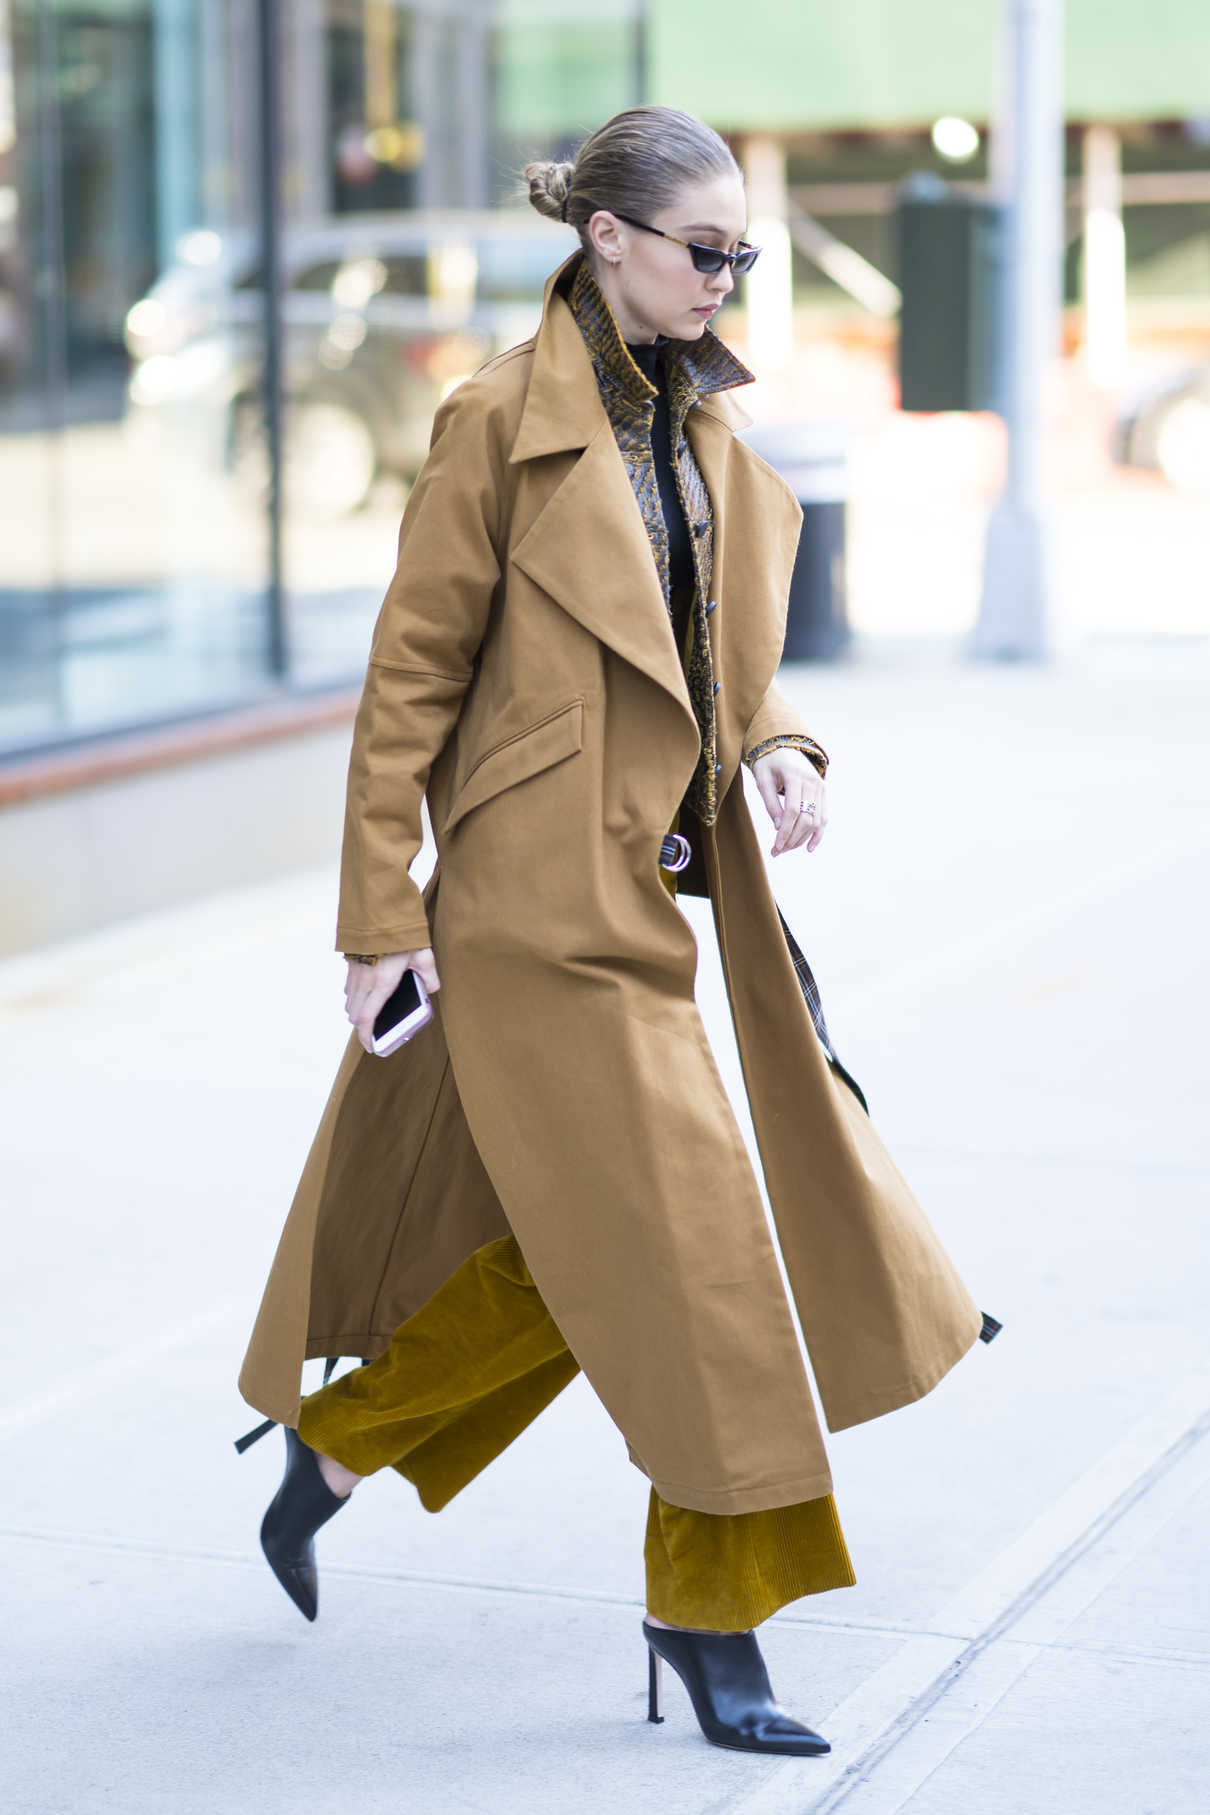 Gigi Hadid Wears a Beige Coat Out in New York City 02/02/2018-3